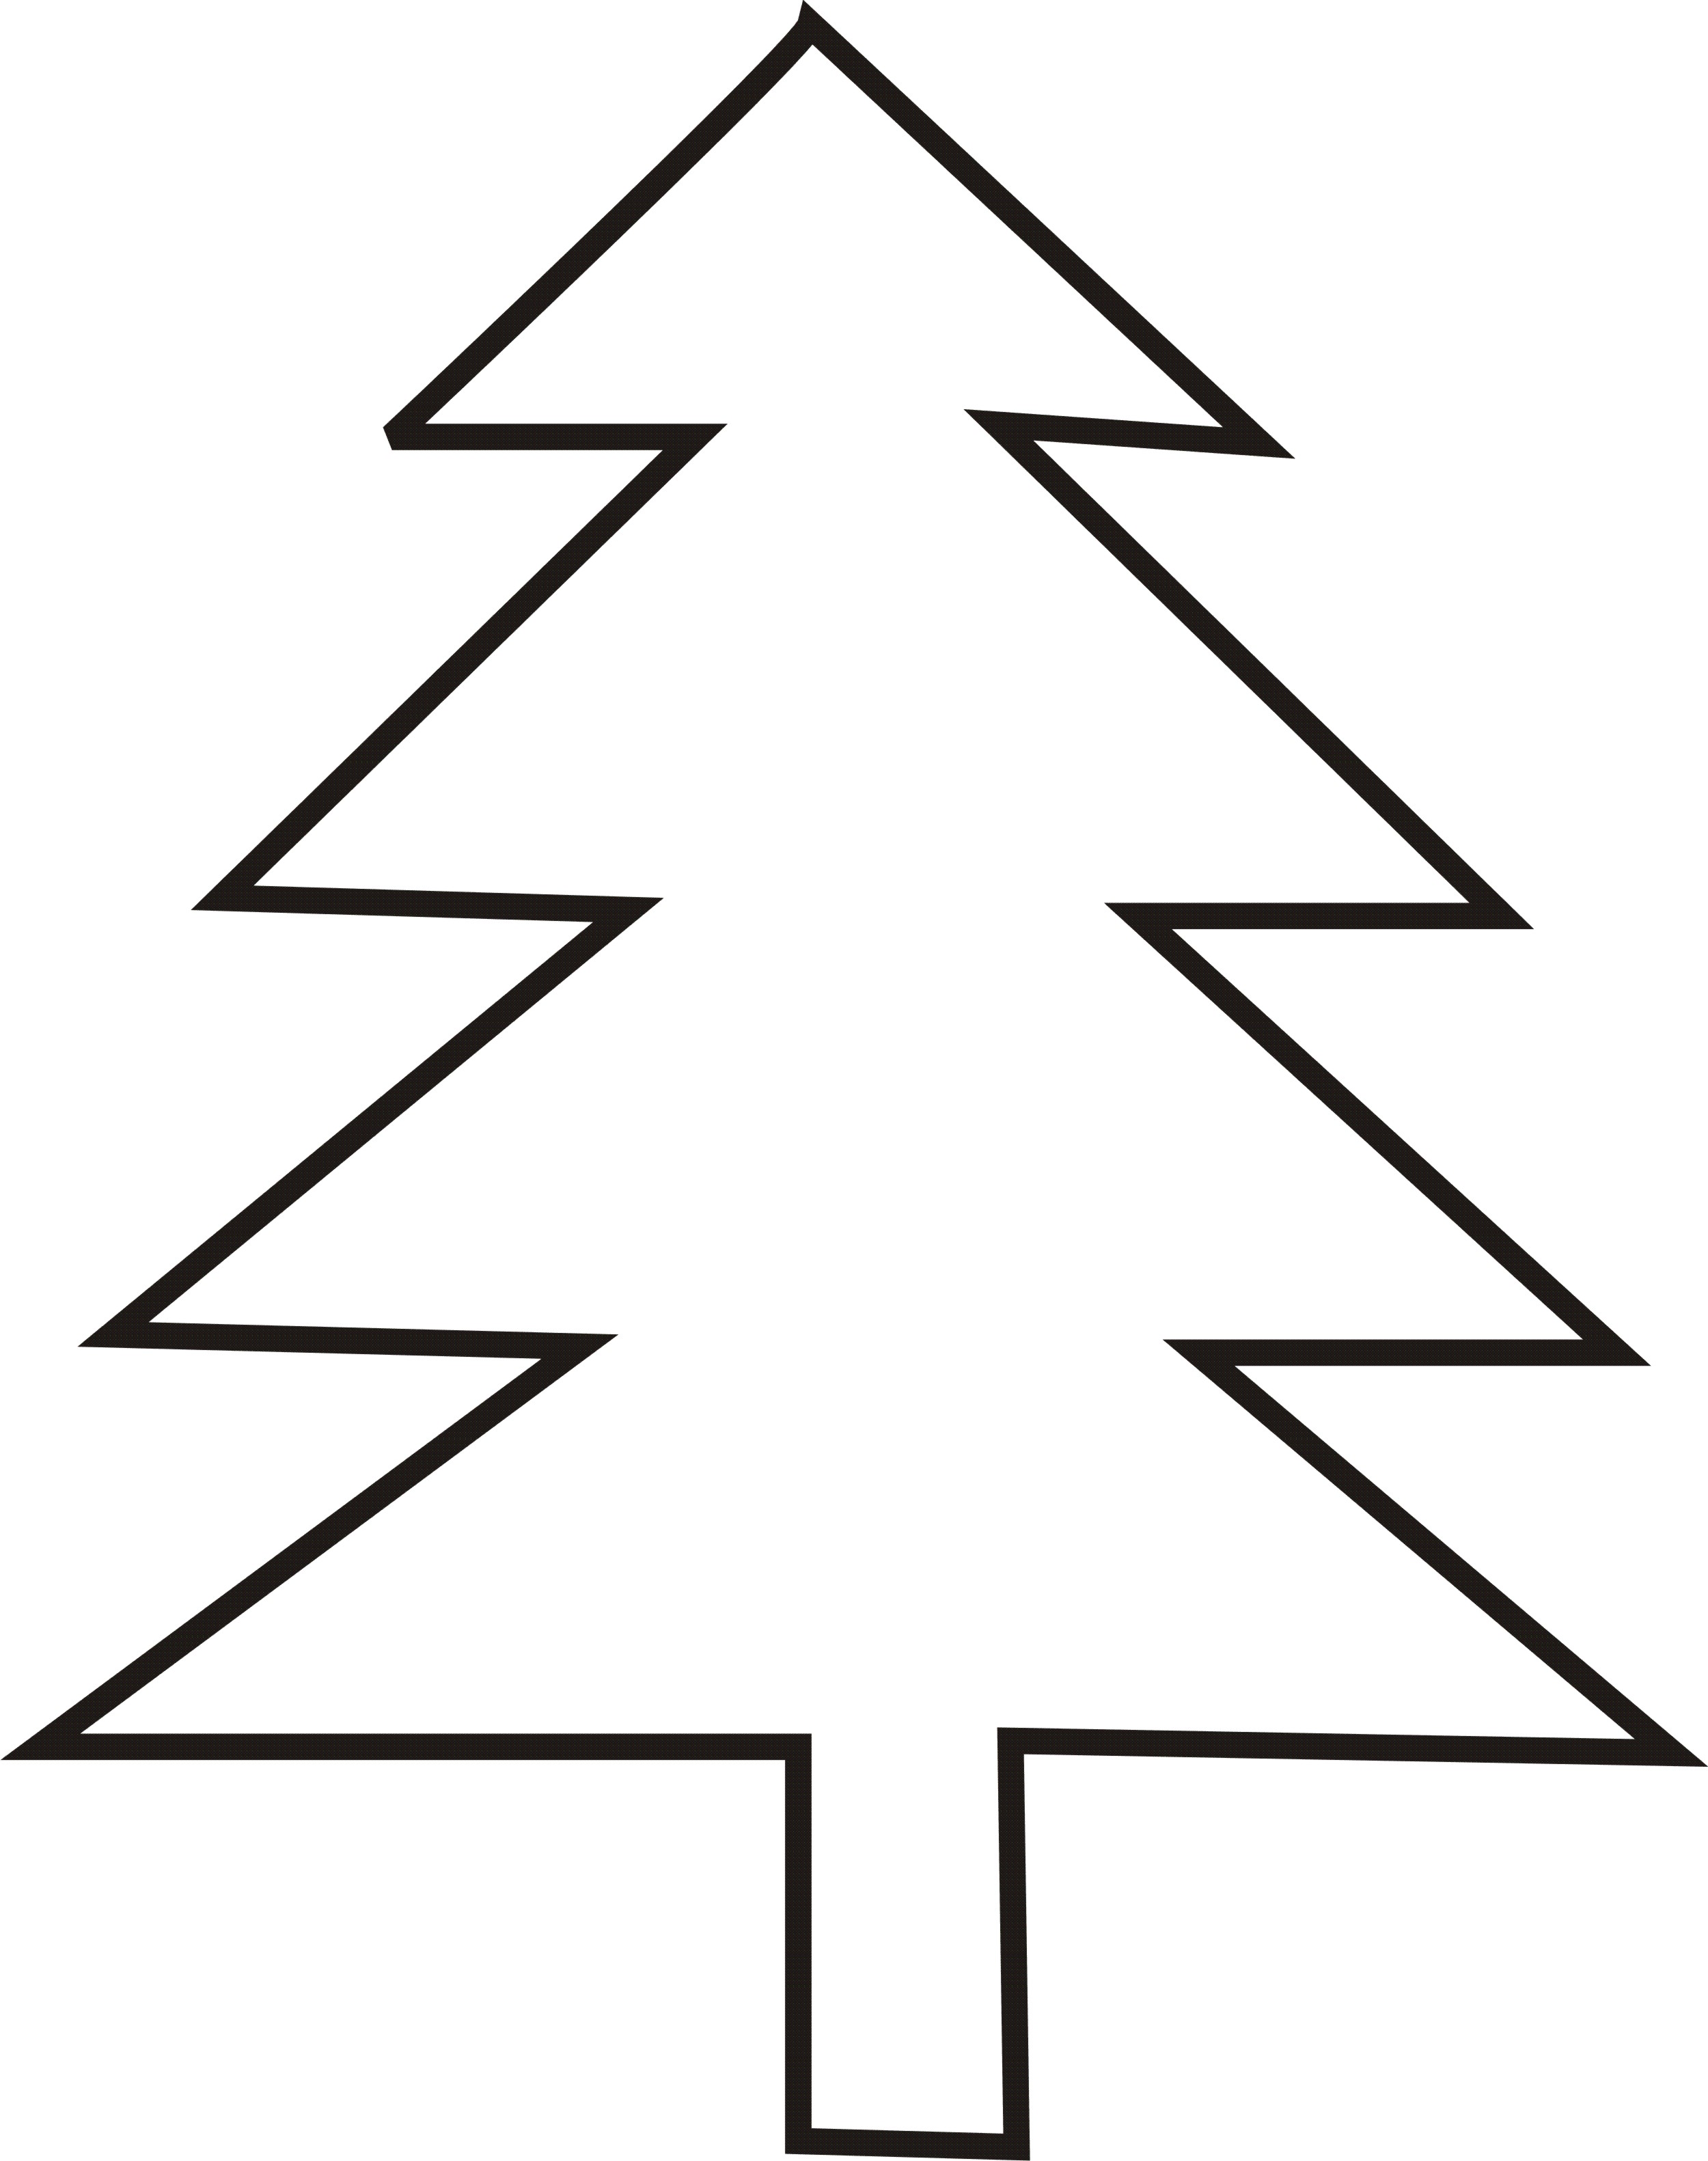 Christmas trees outline clipart image black and white download Free Christmas Tree Outlines, Download Free Clip Art, Free Clip Art ... image black and white download